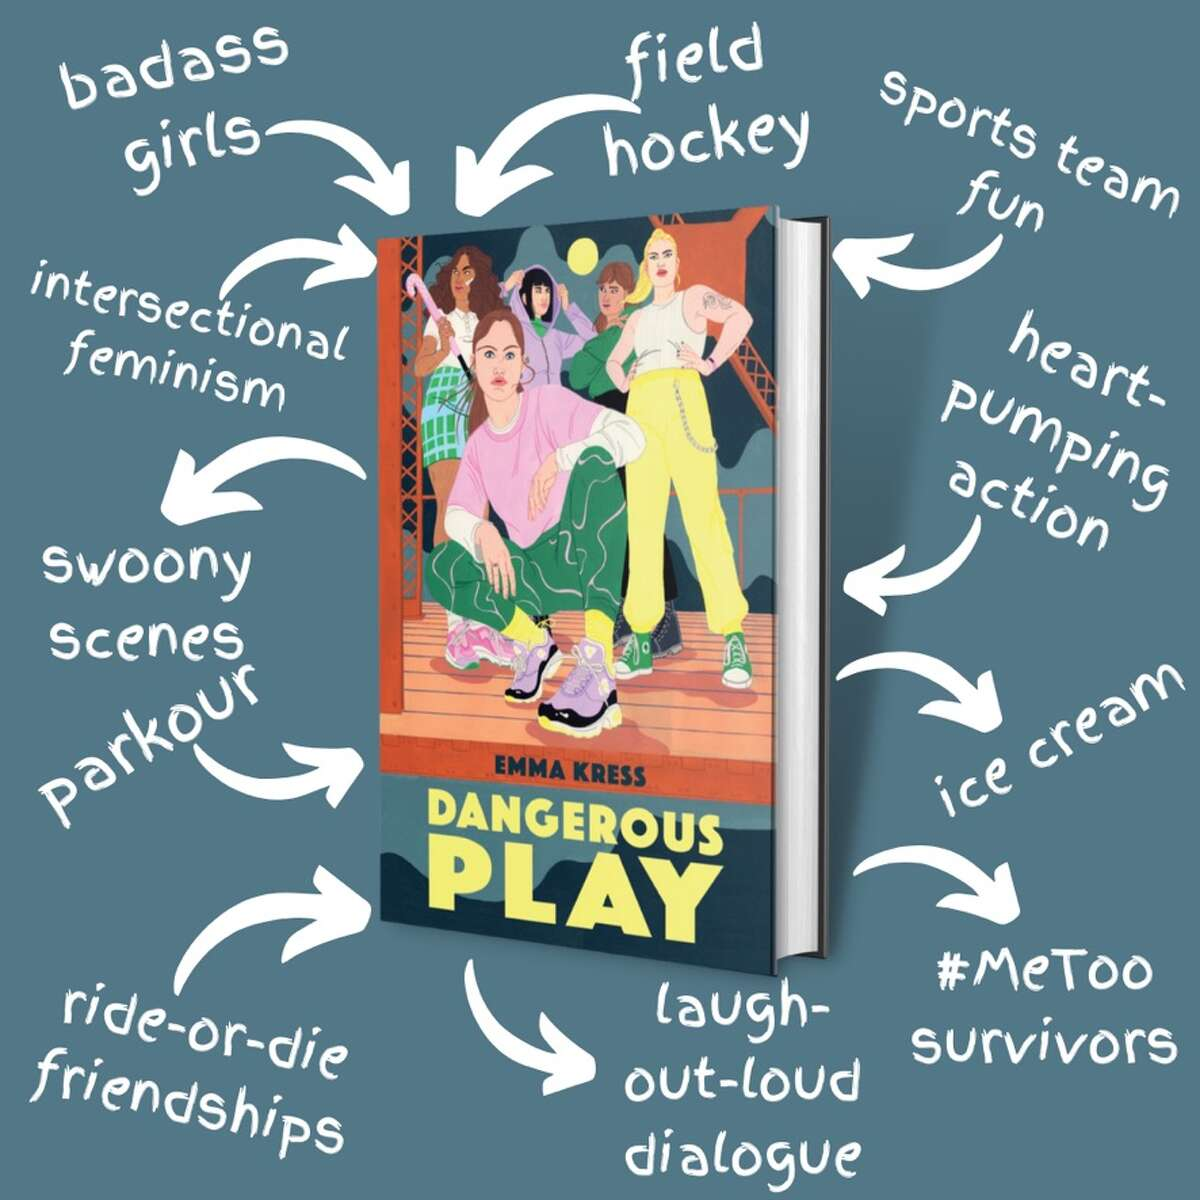 """A new young adult novel by Emma Kress, """"Dangerous Play"""" tells the story of a fierce high school field hockey team that comes to the aid of a fellow player, who has been sexually harassed."""